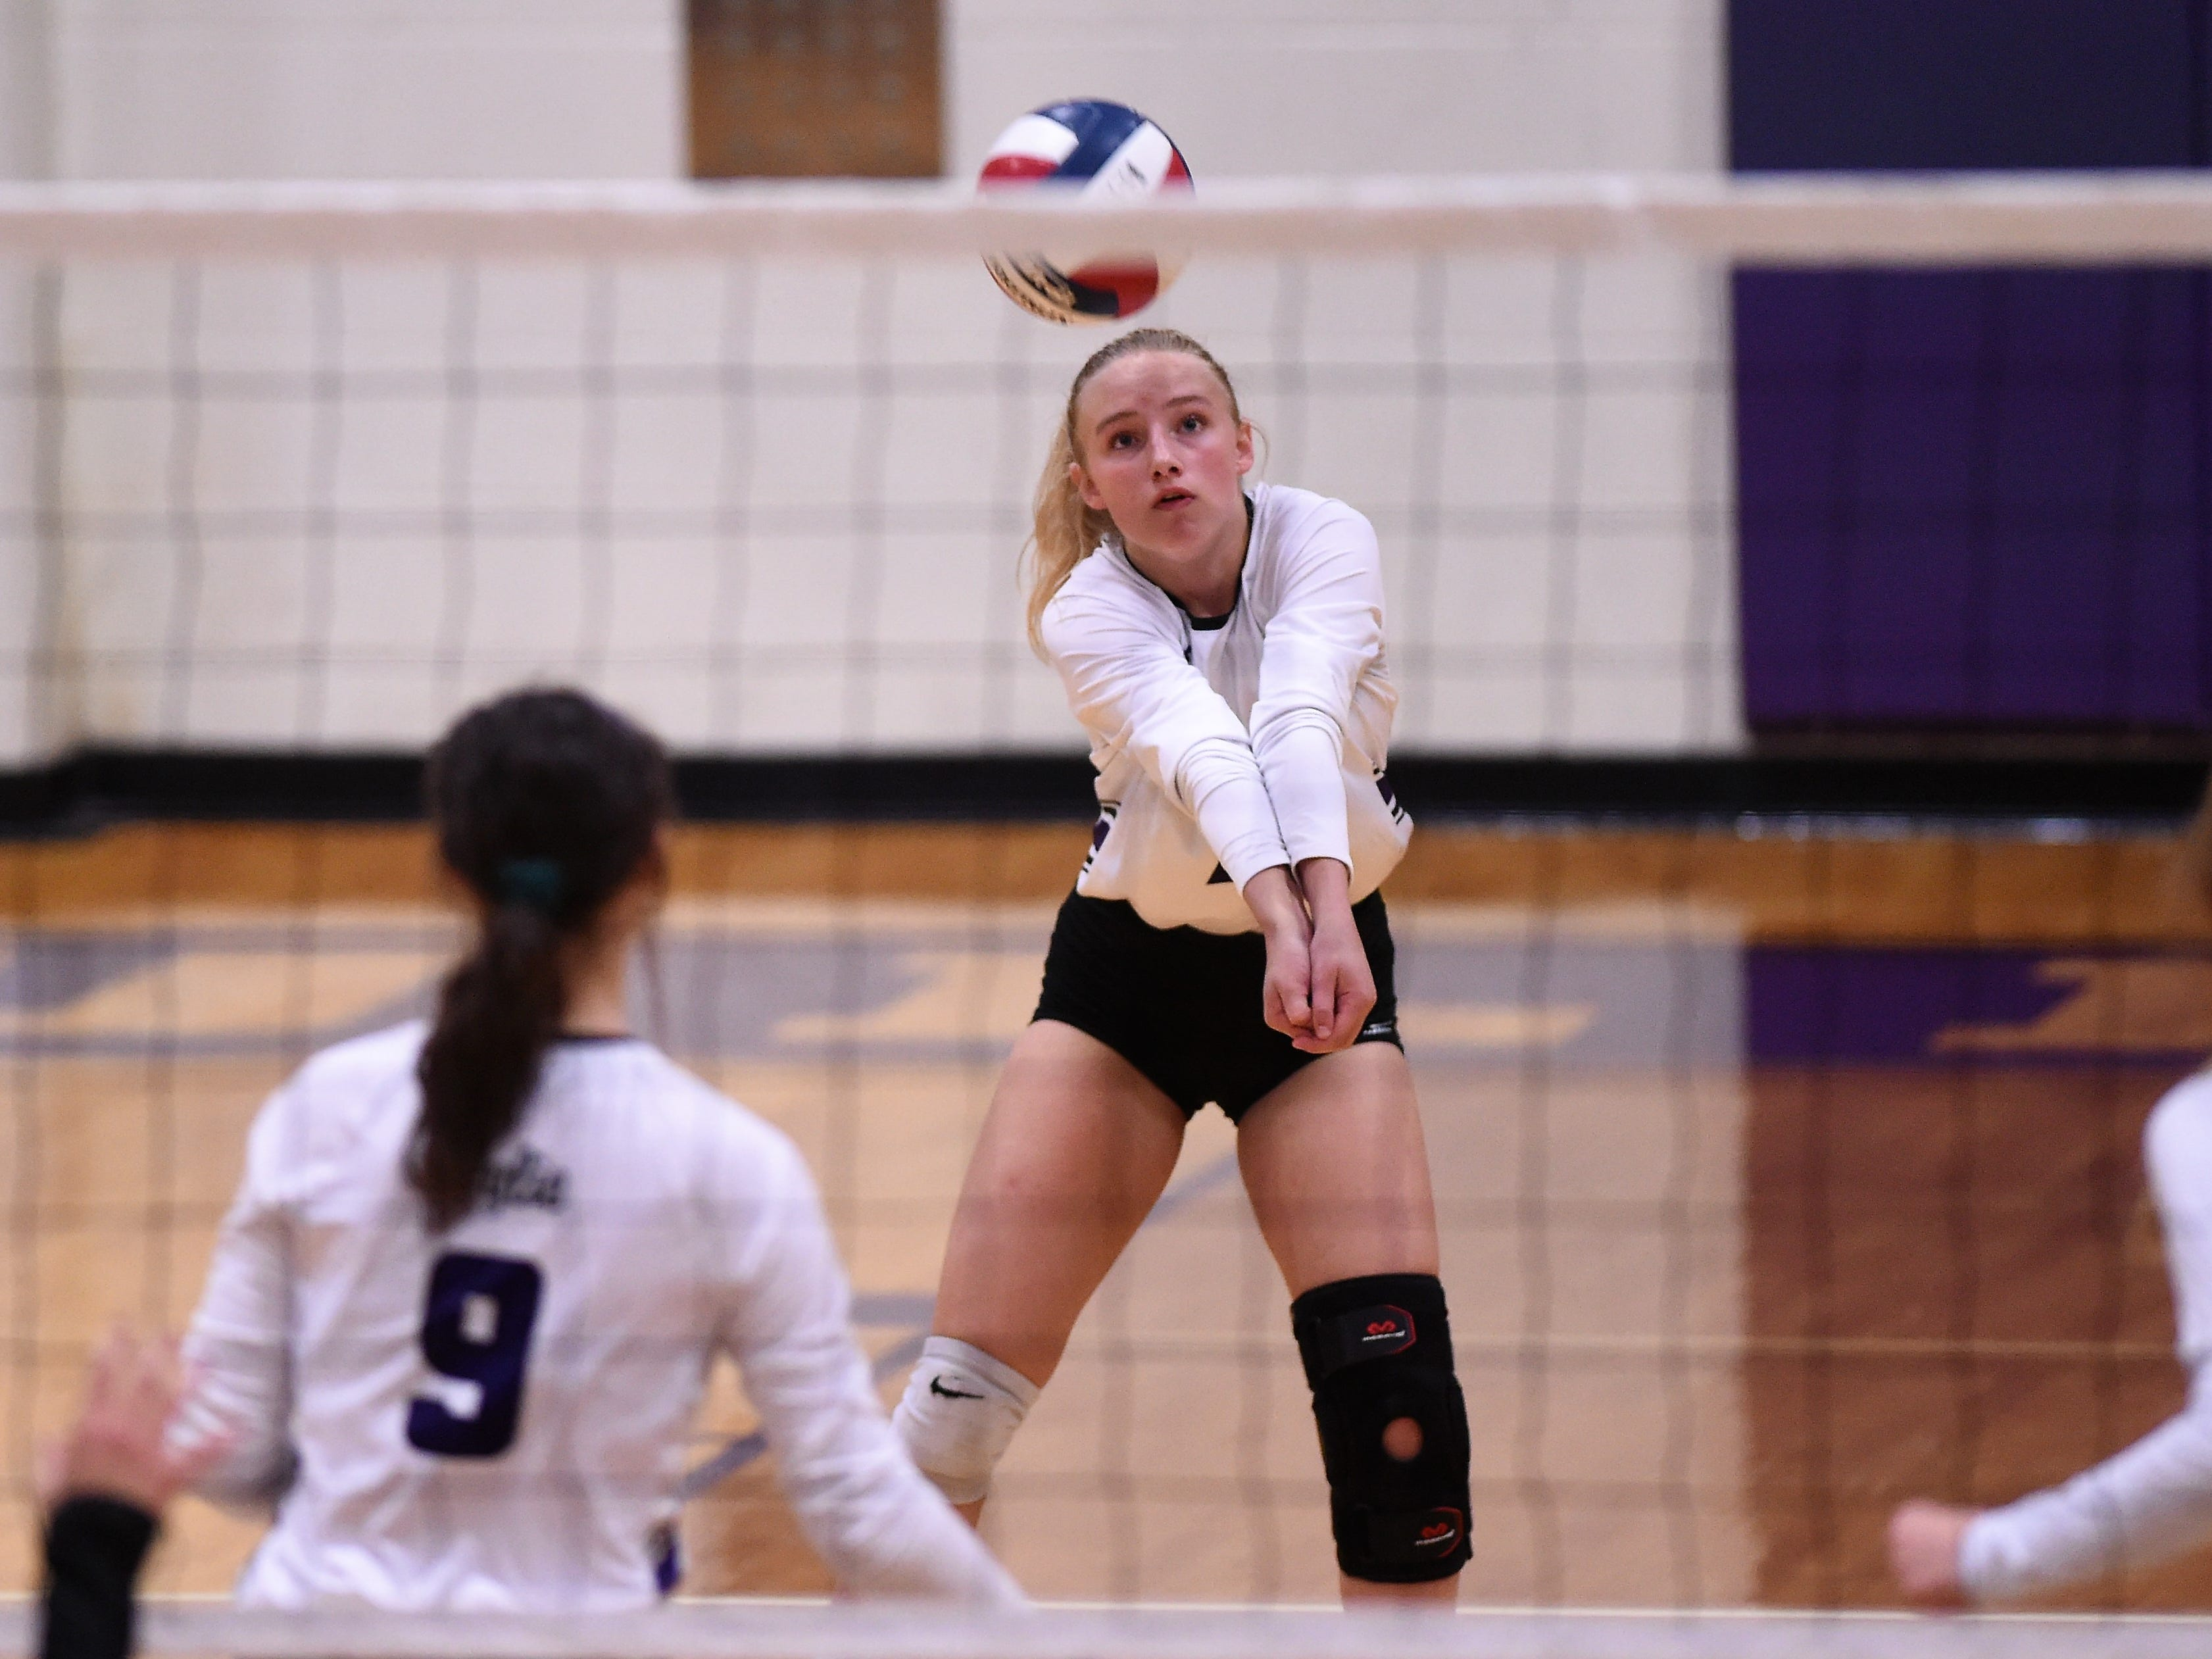 Wylie's Rylie Hays (7) bumps a pass during the Lady Bulldogs' sweep of Big Spring on Tuesday, Sept. 18, 2018.